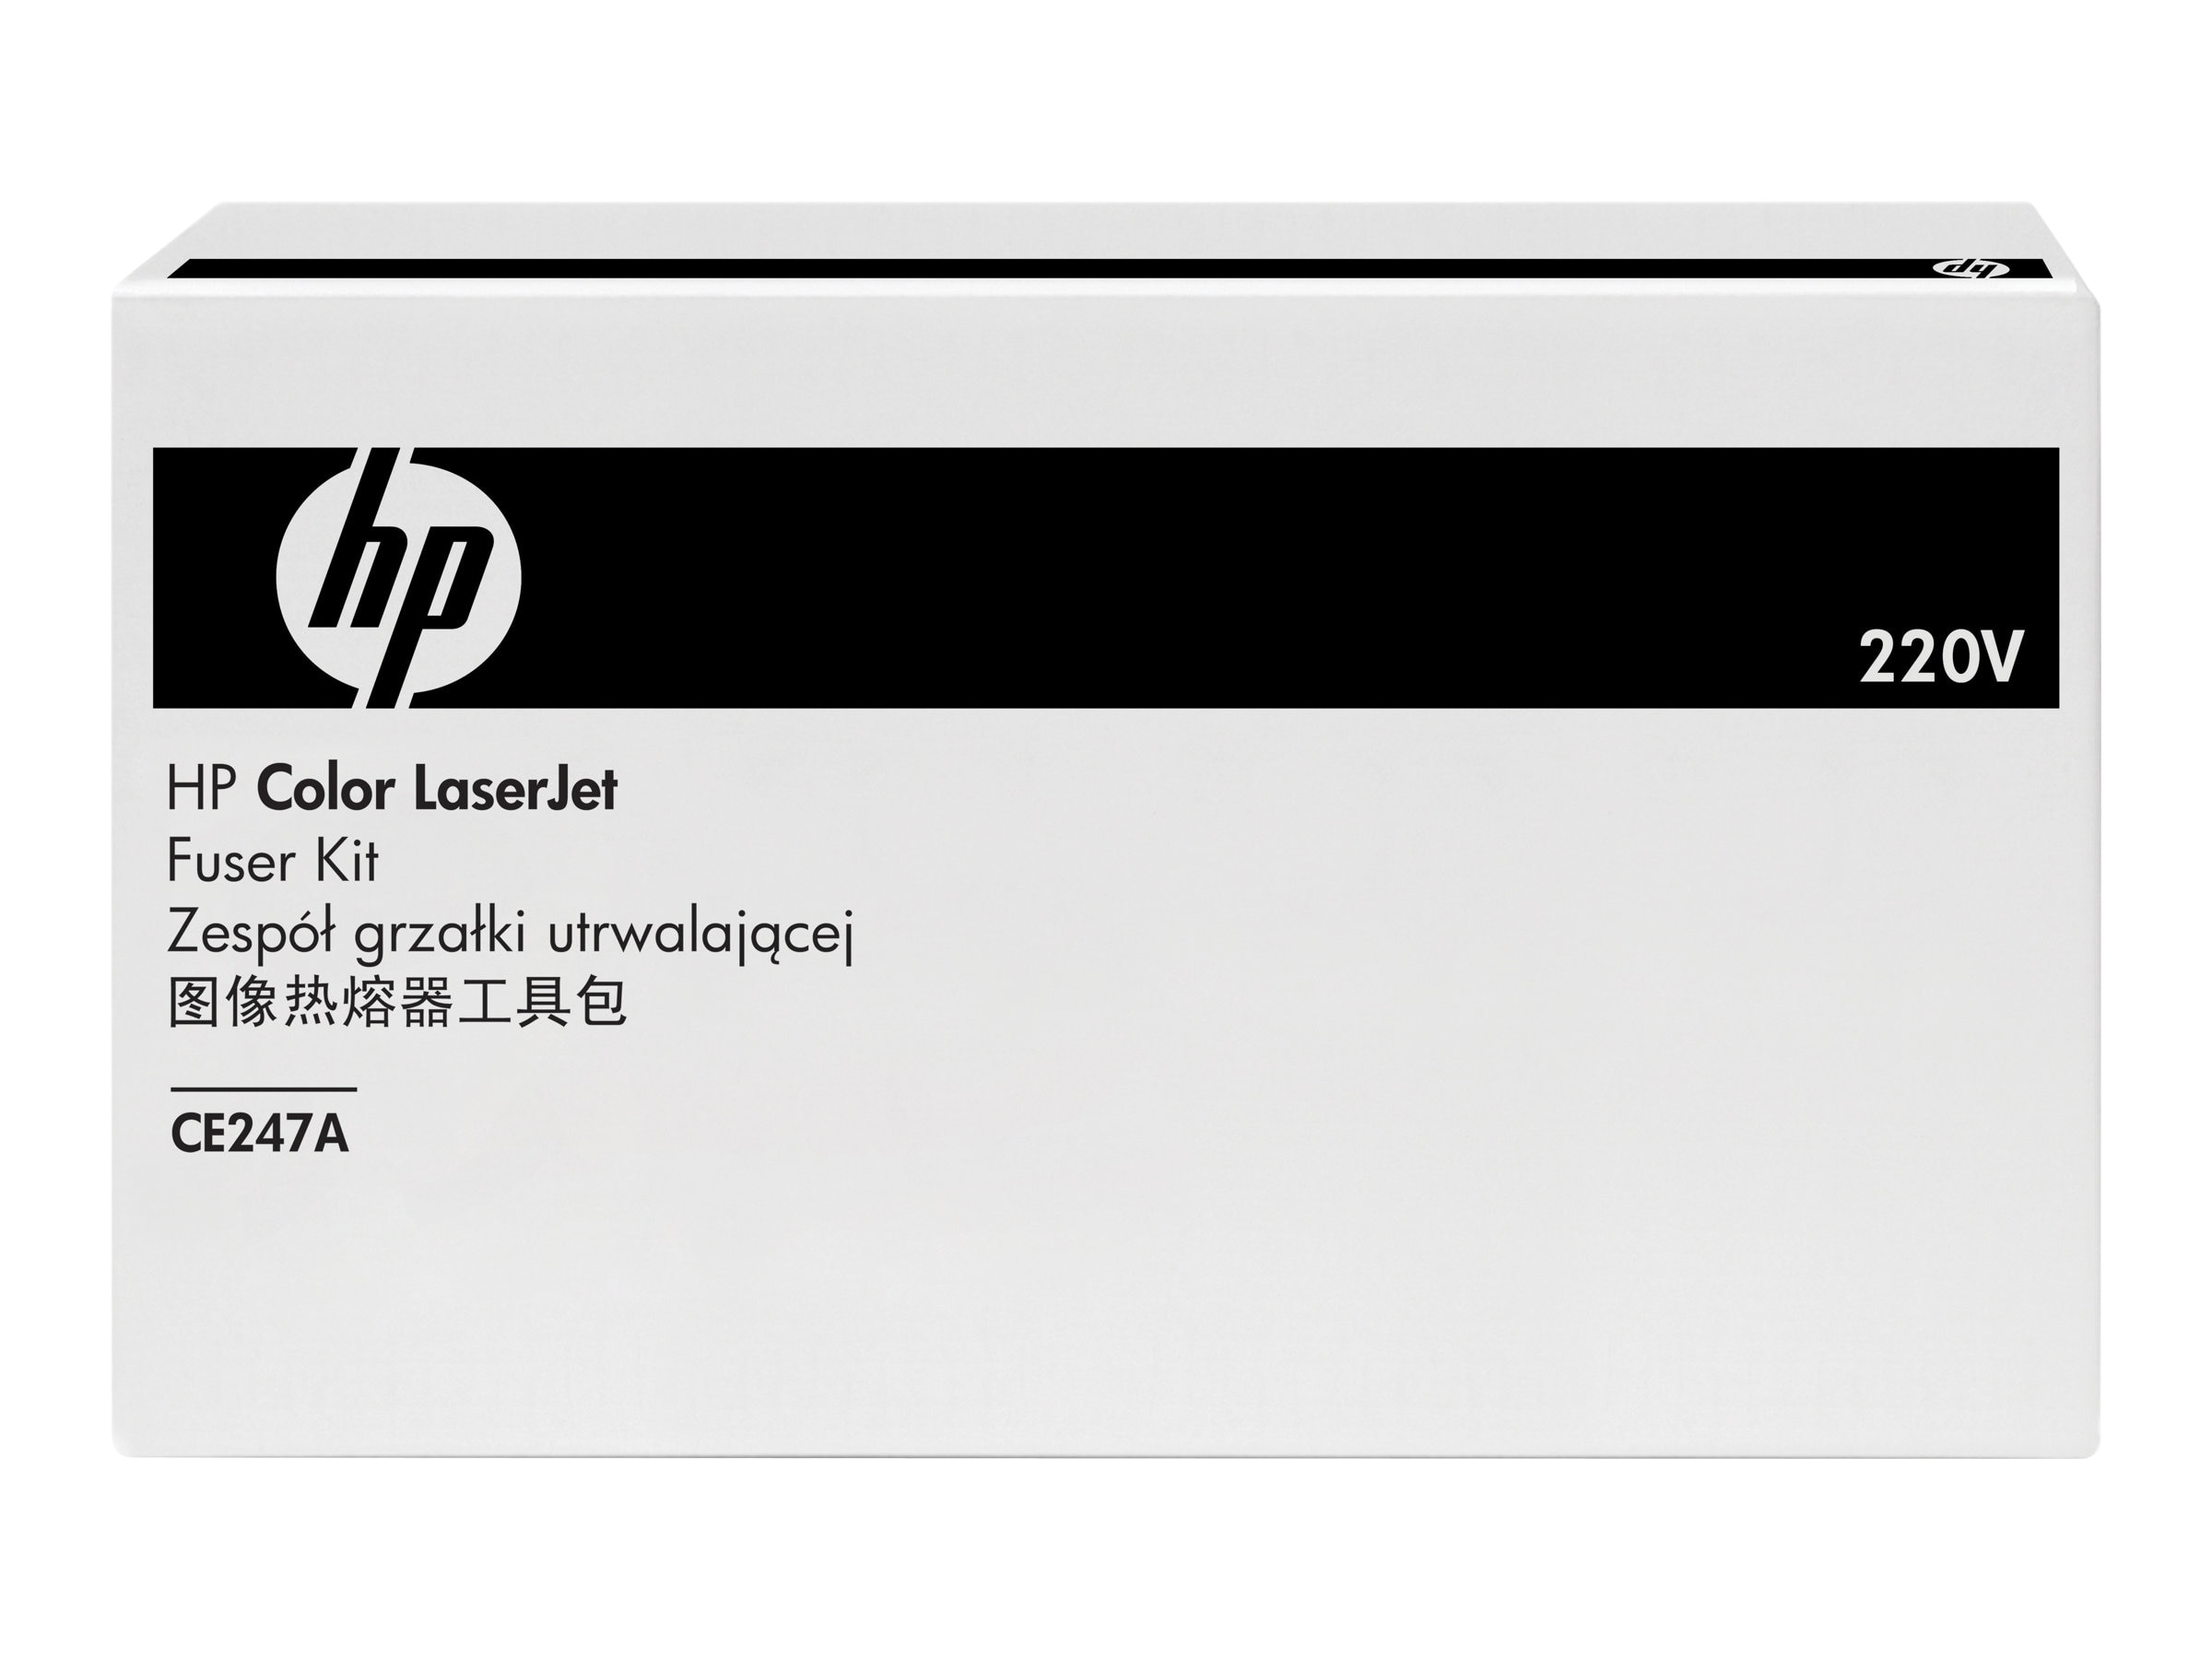 Open Box HP Color LaserJet 220V Fuser Kit